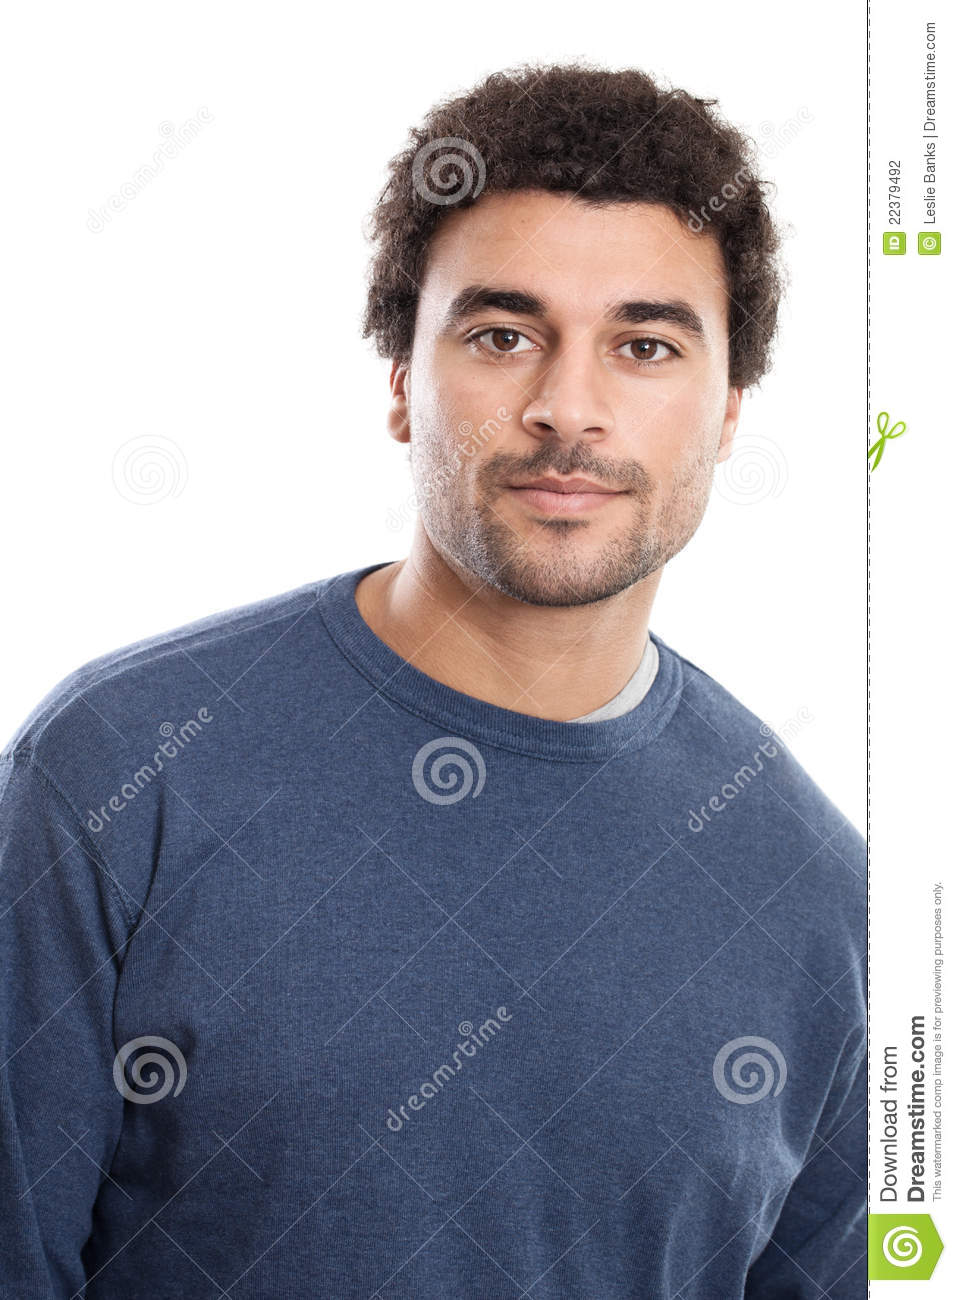 Attractive Middle Eastern Man Portrait Stock Photography ...